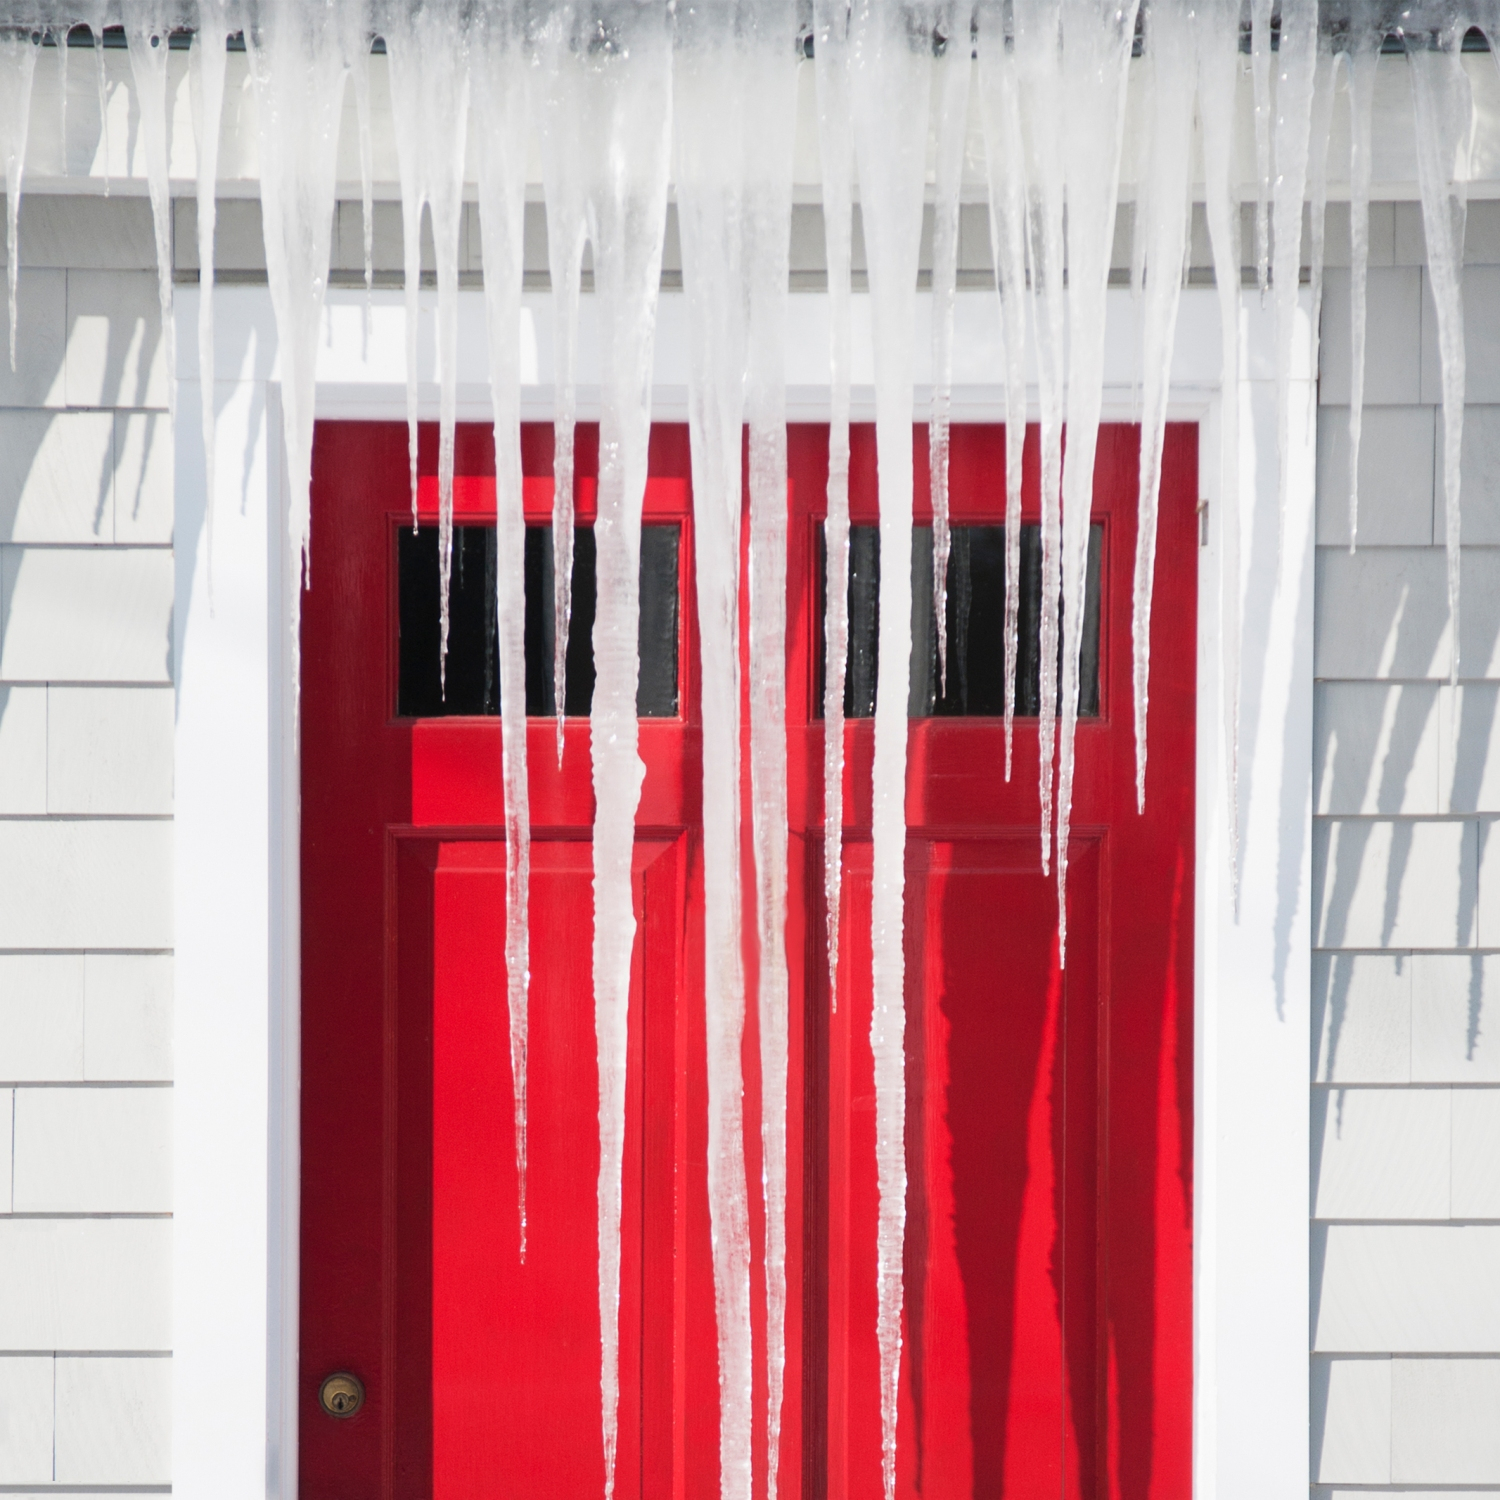 Icicles covering front of house in winter